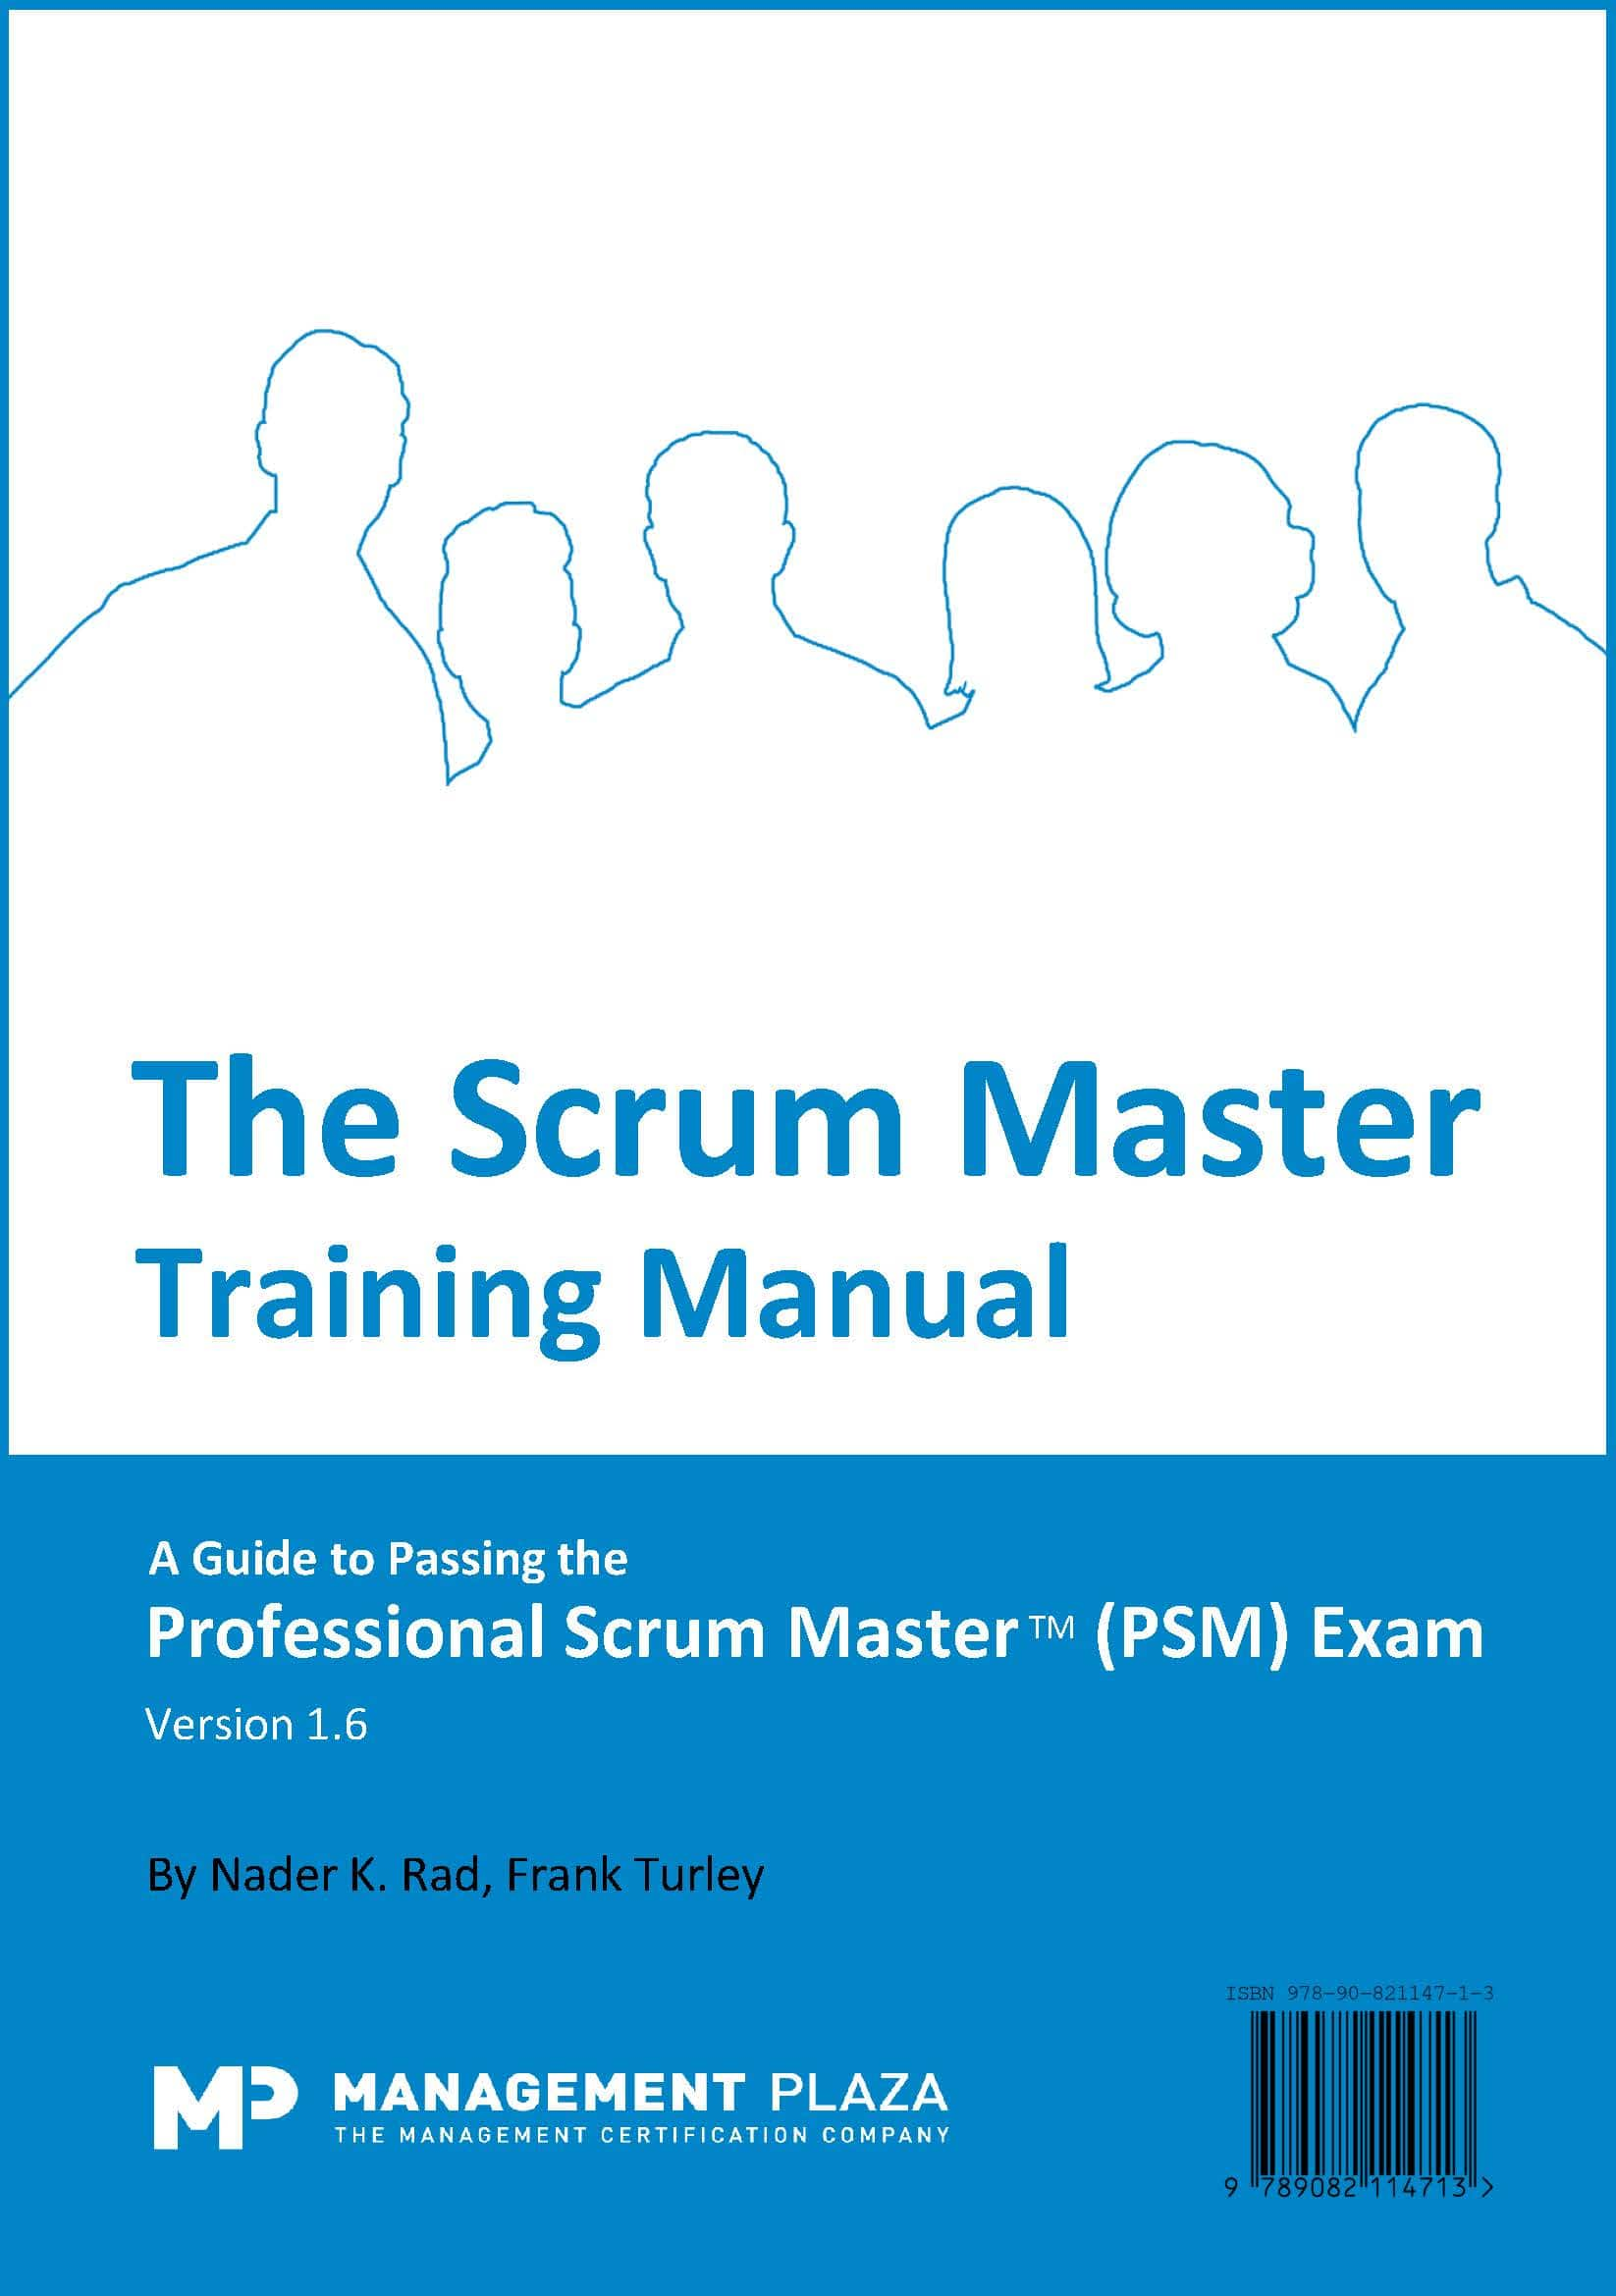 The-Scrum-Master-Training-Manual-Vr1.61-Mplaza